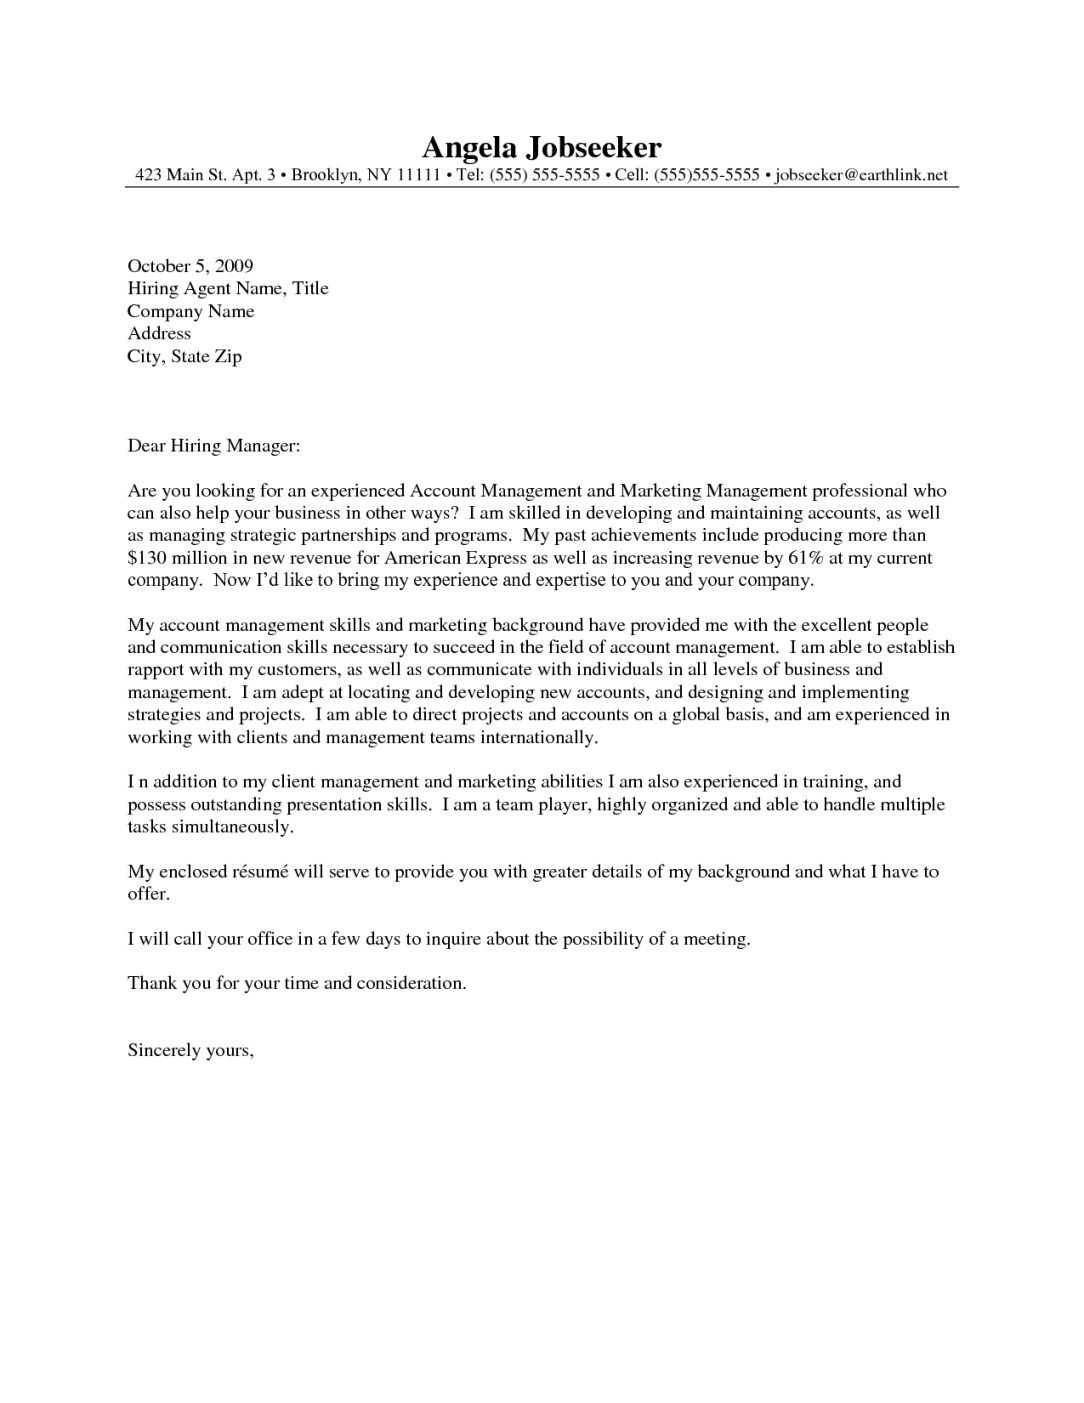 Cover Letter Template Usc Resume Examples Cover Letter For Resume Cover Letter Example Resume Cover Letter Examples